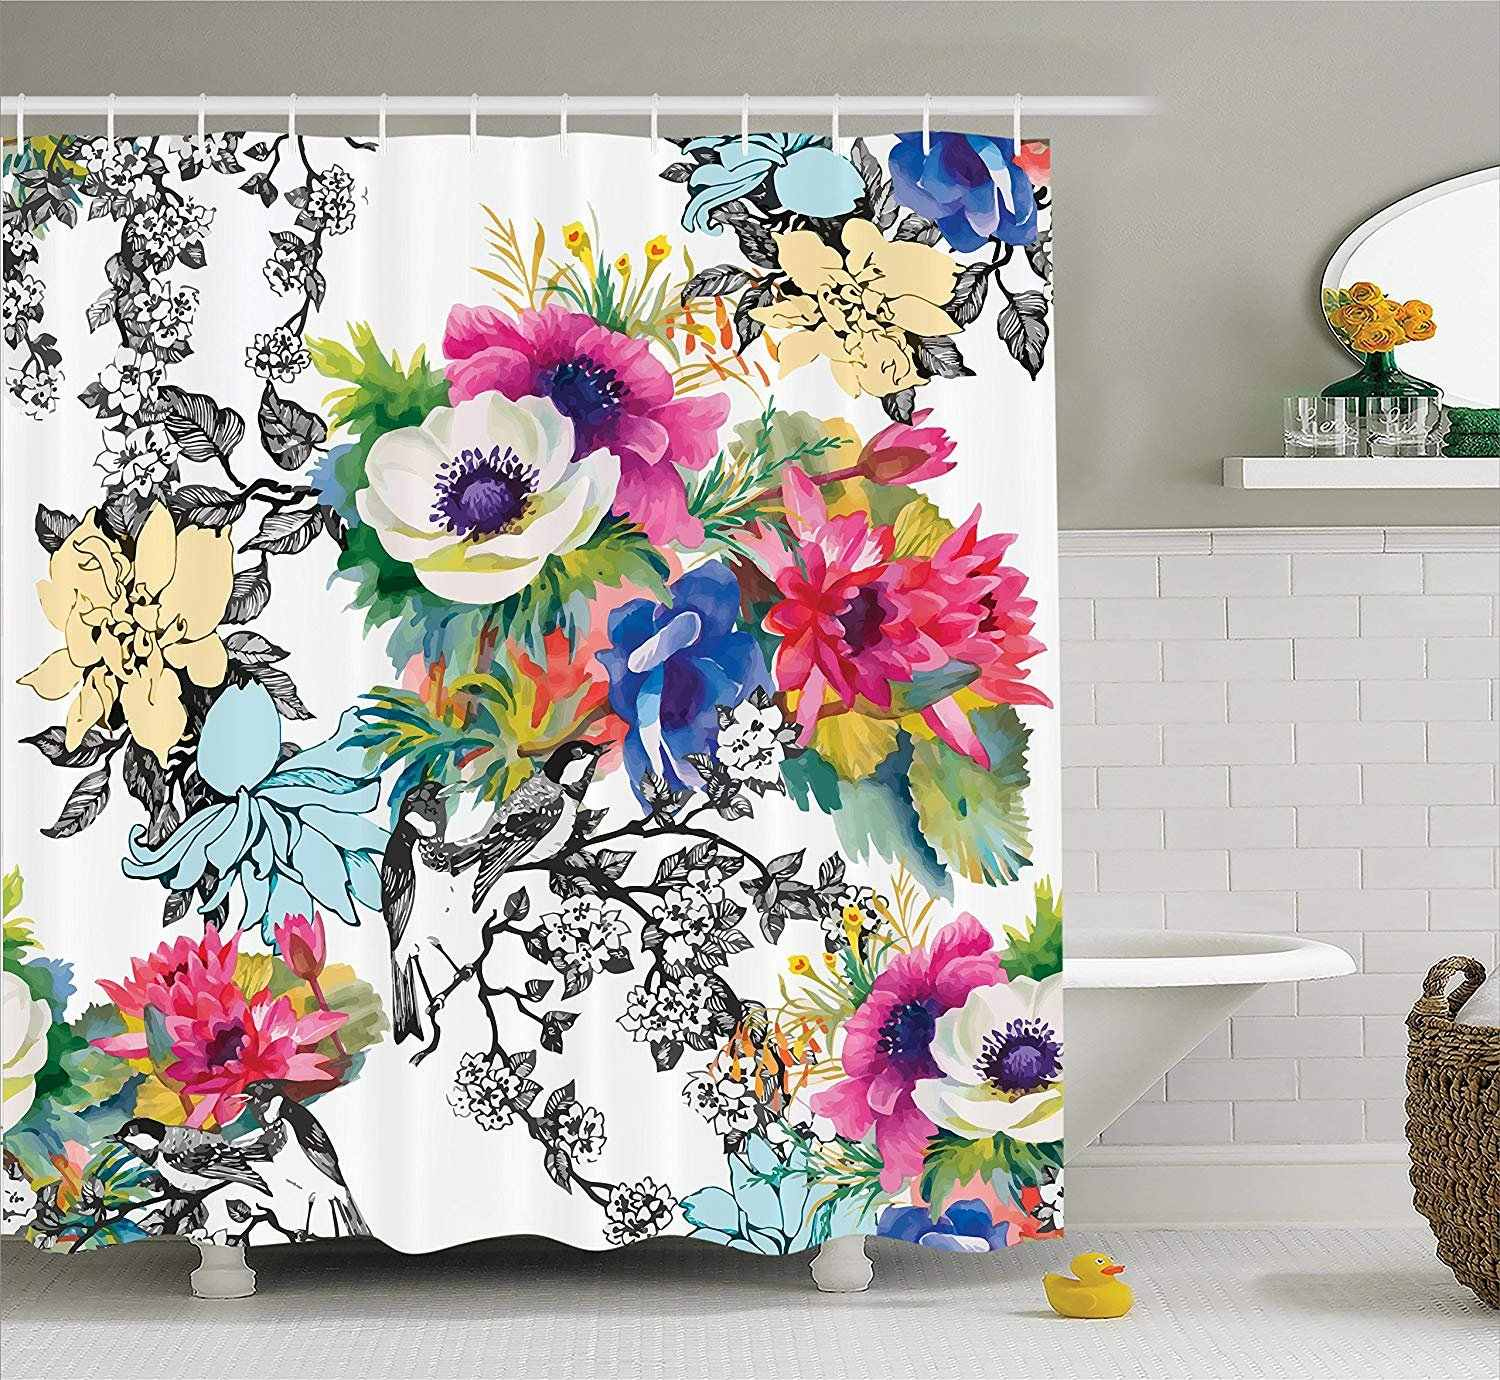 Flower House Vivid Multi-Layered Pattern Print Blossoming Wildflowers Birds Leaves and Branches Bathroom Shower Curtain